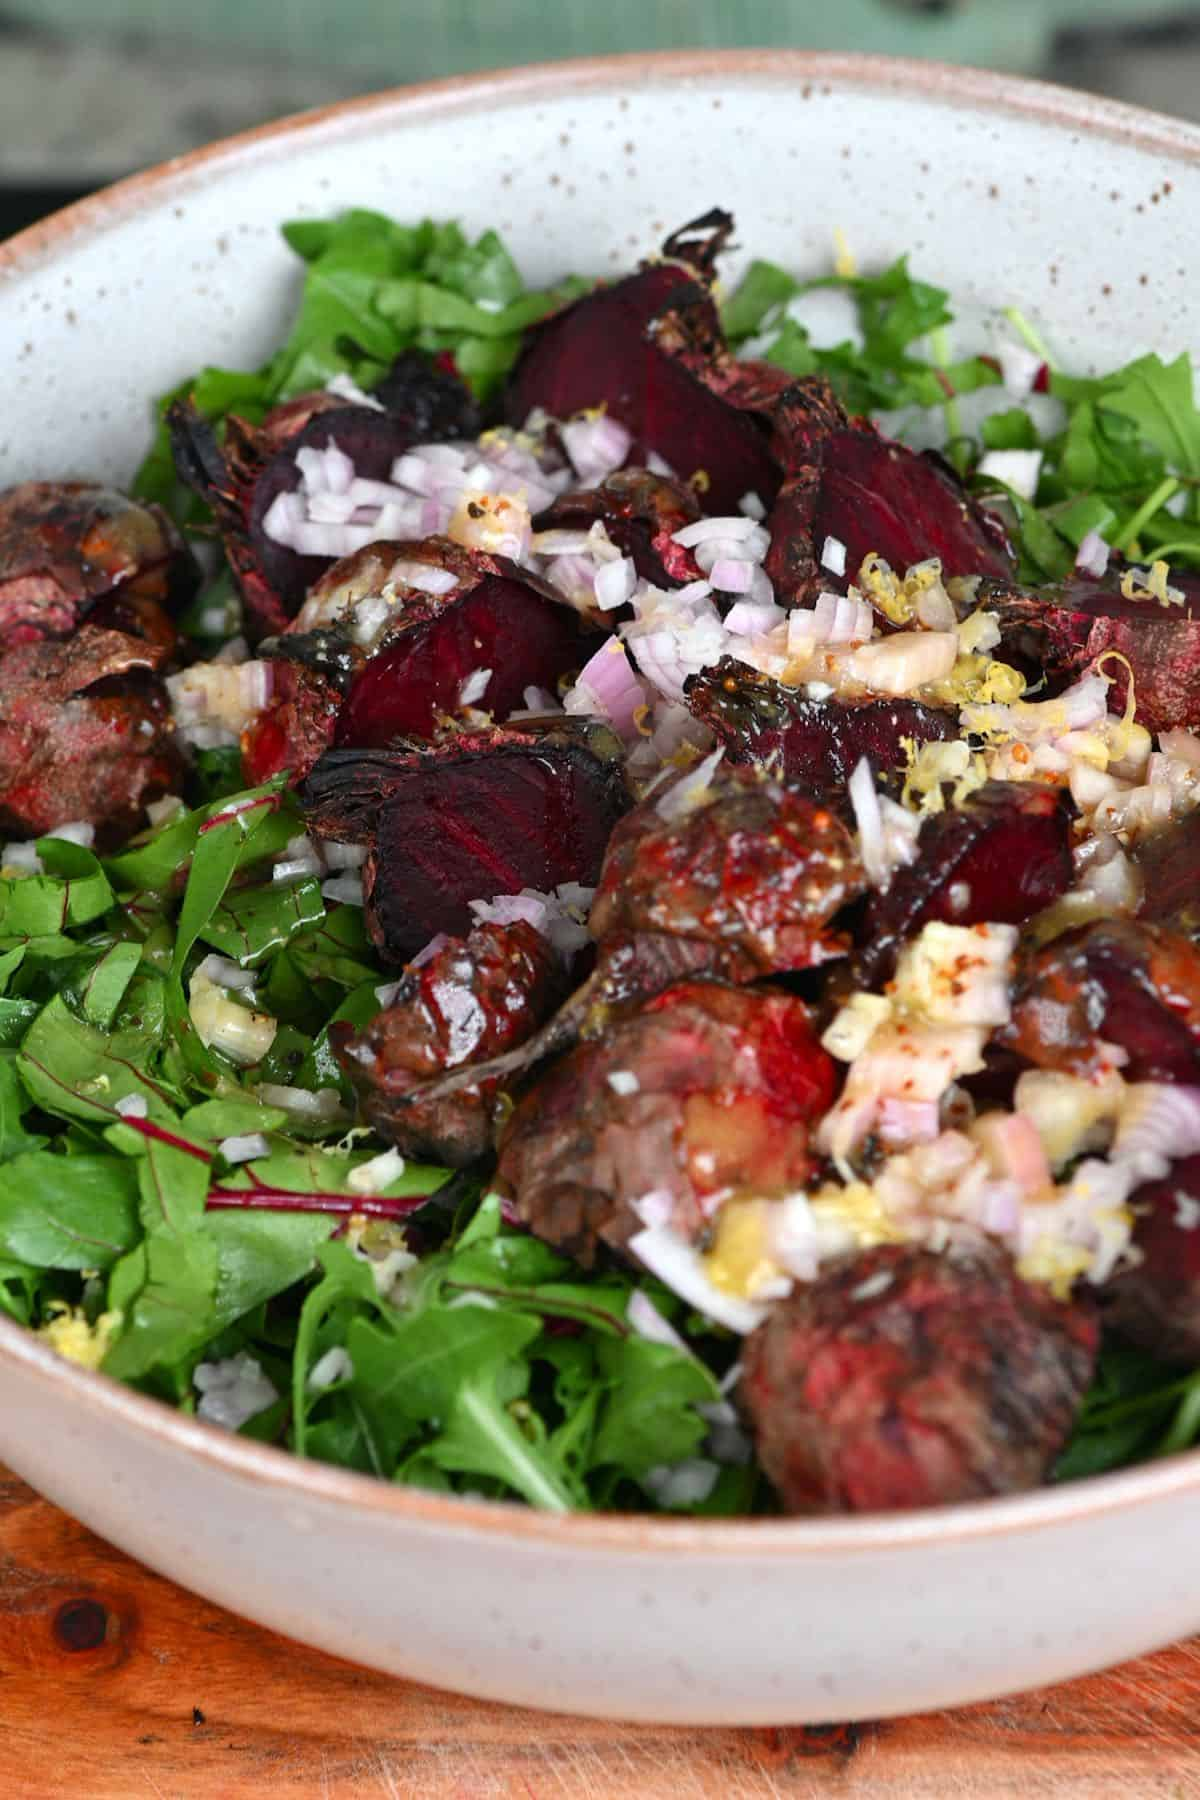 Mixing roasted beet salad in a bowl